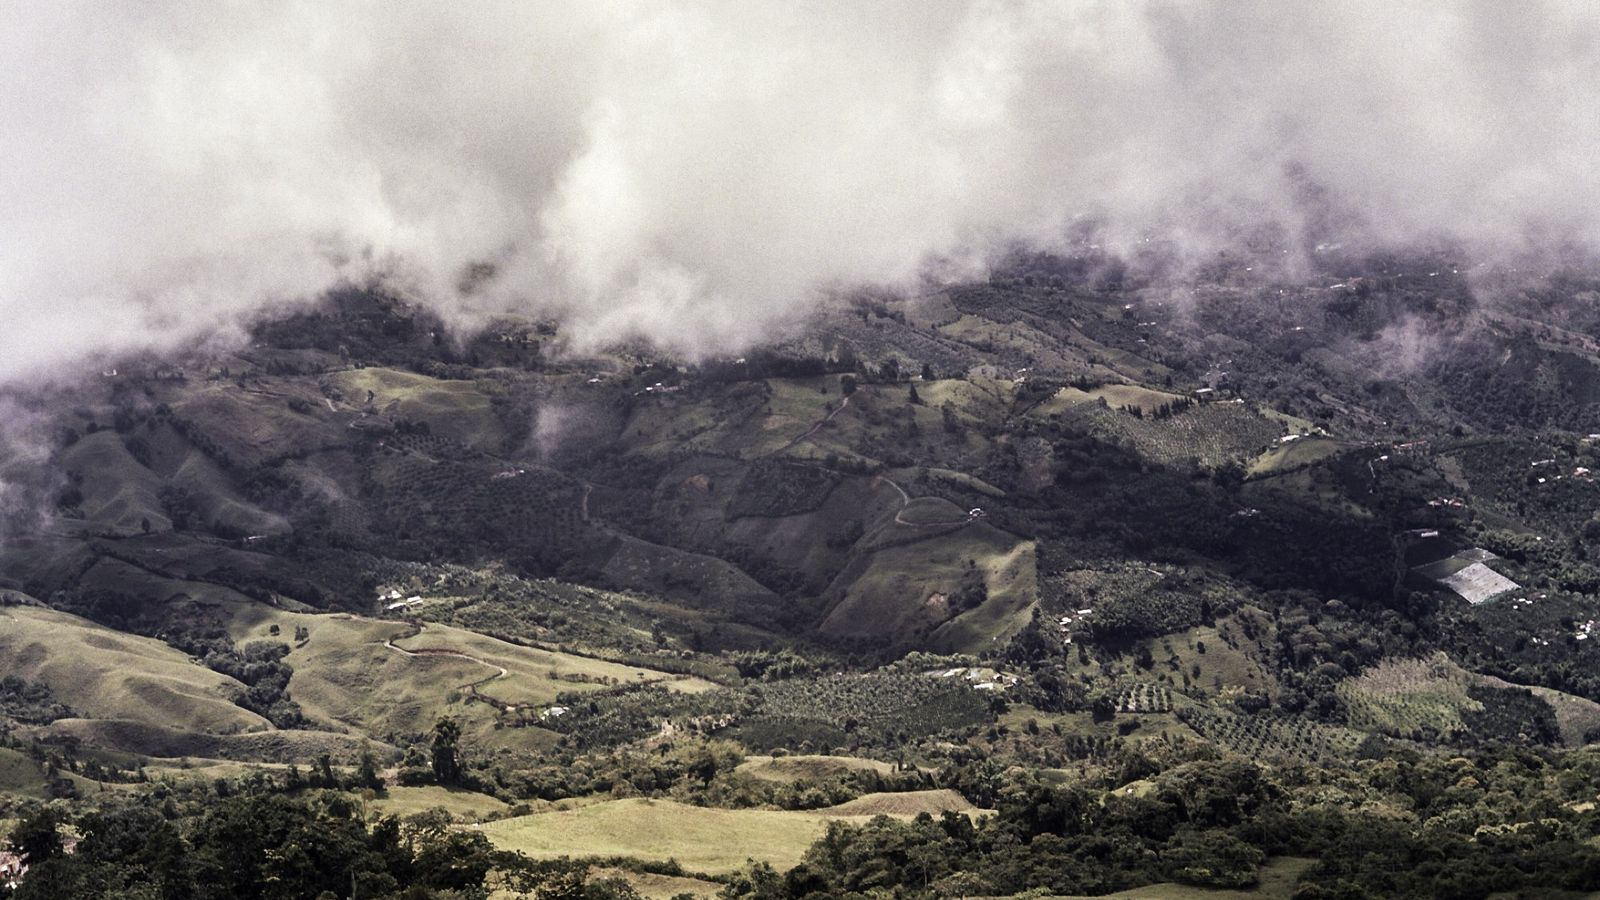 The lush, fertile hillsides of Caldas are part of the Coffee Cultural Landscape of Colombia UNESCO ...